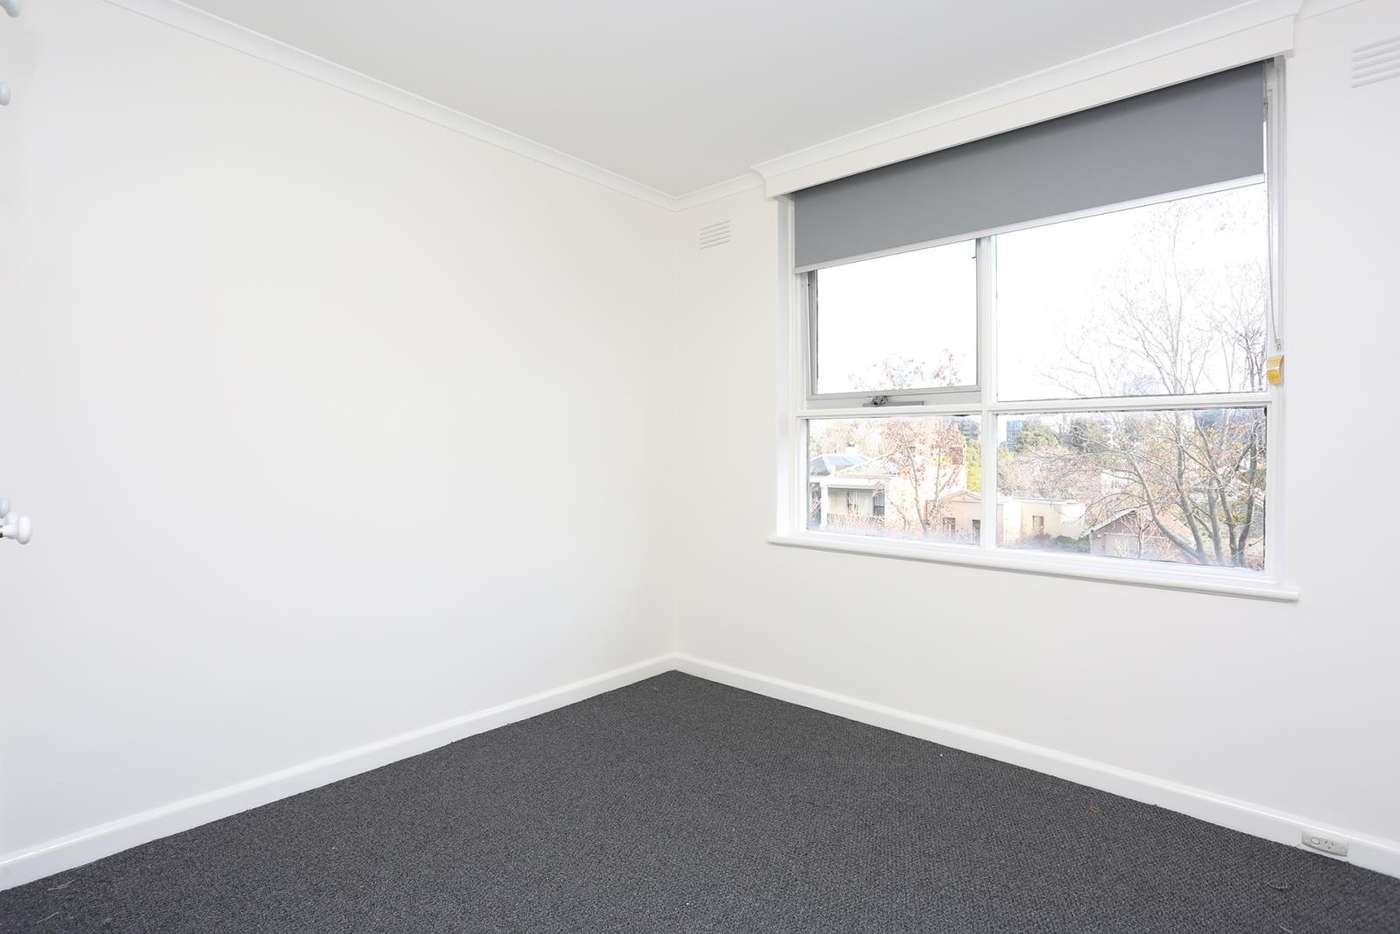 Sixth view of Homely apartment listing, 9/30 Park Drive, Parkville VIC 3052